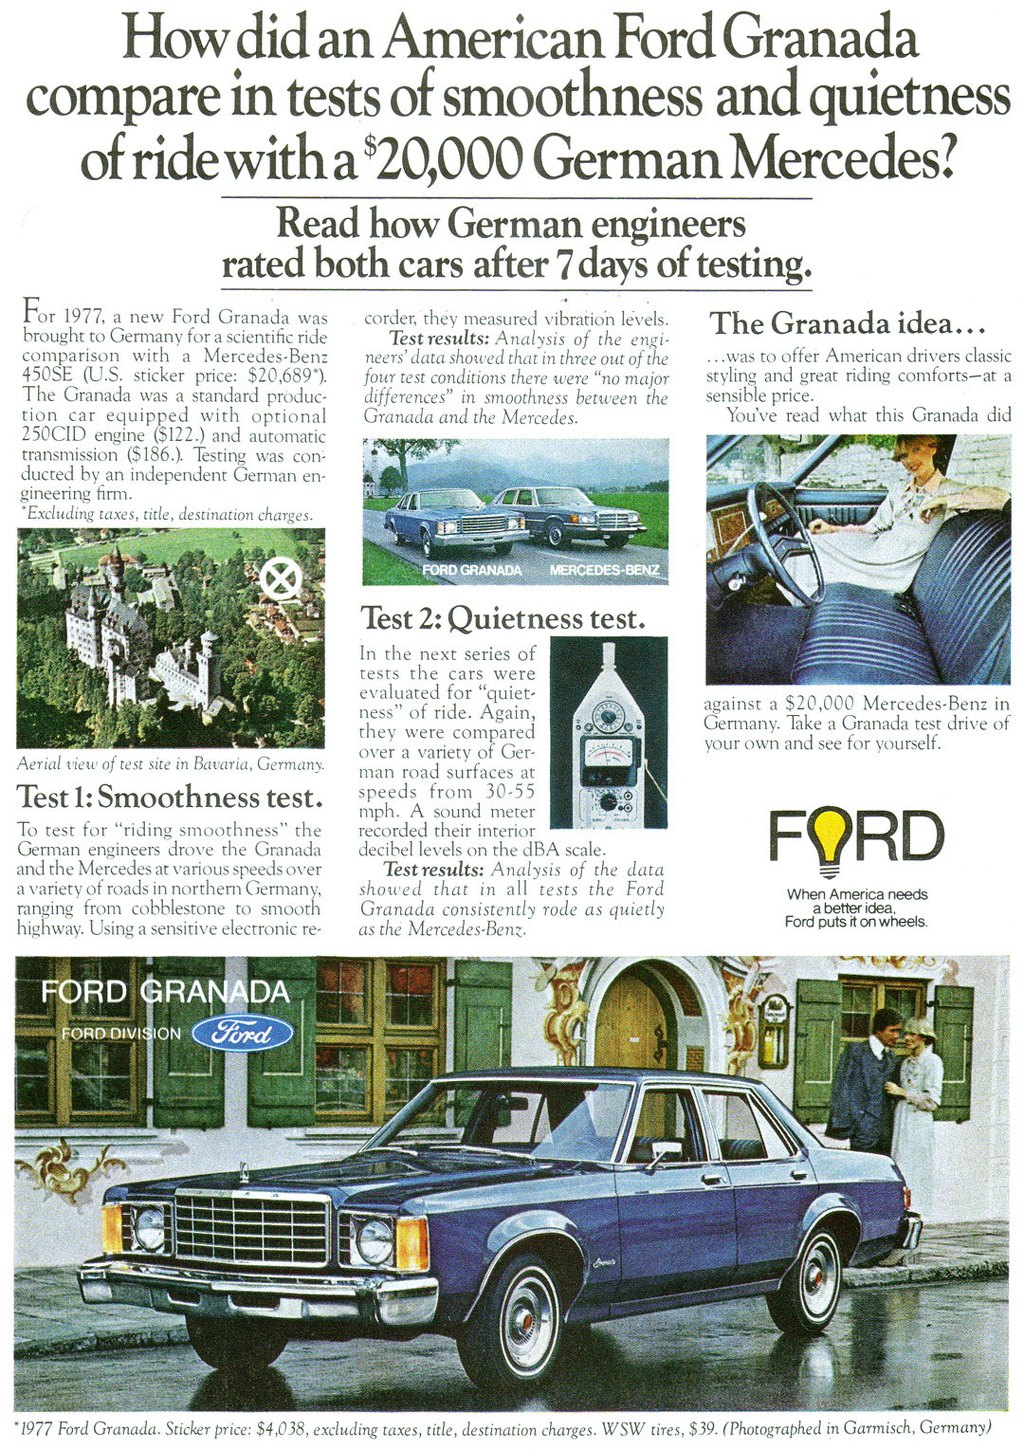 How did an American Ford Granada compare in tests of smoothness and quietness of ride with a US$ 20,000 German Mercedes?  Read how German engineers rated both cars after 7 days of testing.  For 1977, a new Ford Granada was brought to Germany for a scientific ride comparison with a Mercedes-Benz 450SE (U.S. sticker price: $20,6891. The Granada was a standard produc-tion car equipped with optional 250CID engine ($122.) and automatic transmission ($186.). Testing was cori-ducted by an independent German en-gineering firm. *Excluding taxes, title, destination charges.   Aerial view of test site in Bavaria, Germany. Test 1: Smoothness test. To test for ''riding smoothness'' the German engineers drove the Granada and the Mercedes at various speeds over a variety of roads in northern Germany, ranging from cobblestone to smooth highway. Using a sensitive electronic re- FORD GRANADA tioN  corder, they measured vibration Test results: Analysis of the enai-neers' data showed that in three out of le four test conditions there were ''no major differences'' in smoothness between the Granada and the Mercedes.  The Granada idea... ...was to offer American drivers classic styling and great riding comforts—at a sensible price. You've read what this Granada did   Test 2: Quietness test. In the next series of tests the cars were evaluated for ''quiet-ness'' of ride. Again, they were compared over a variety of Ger-man road surfaces at speeds from 30.55 mph. A sound meter recorded their interior decibel levels on the dBA scale. Test results: Analysis of the data showed that in all tests the Ford Granada consistently rode as quietly as the Mercedes-Benz.  against a $20,000 Mercedes-Benz in Germany. Take a Granada test drive of your own and see for yourself.  FORD  When America needs a better idea. Ford puts it on wheels.   *1977 Ford Granada. Sticker price: $4,038, excluding taxes, title, destination charges. WSW tires, $39. (Photographed in Garmisch. Germany)